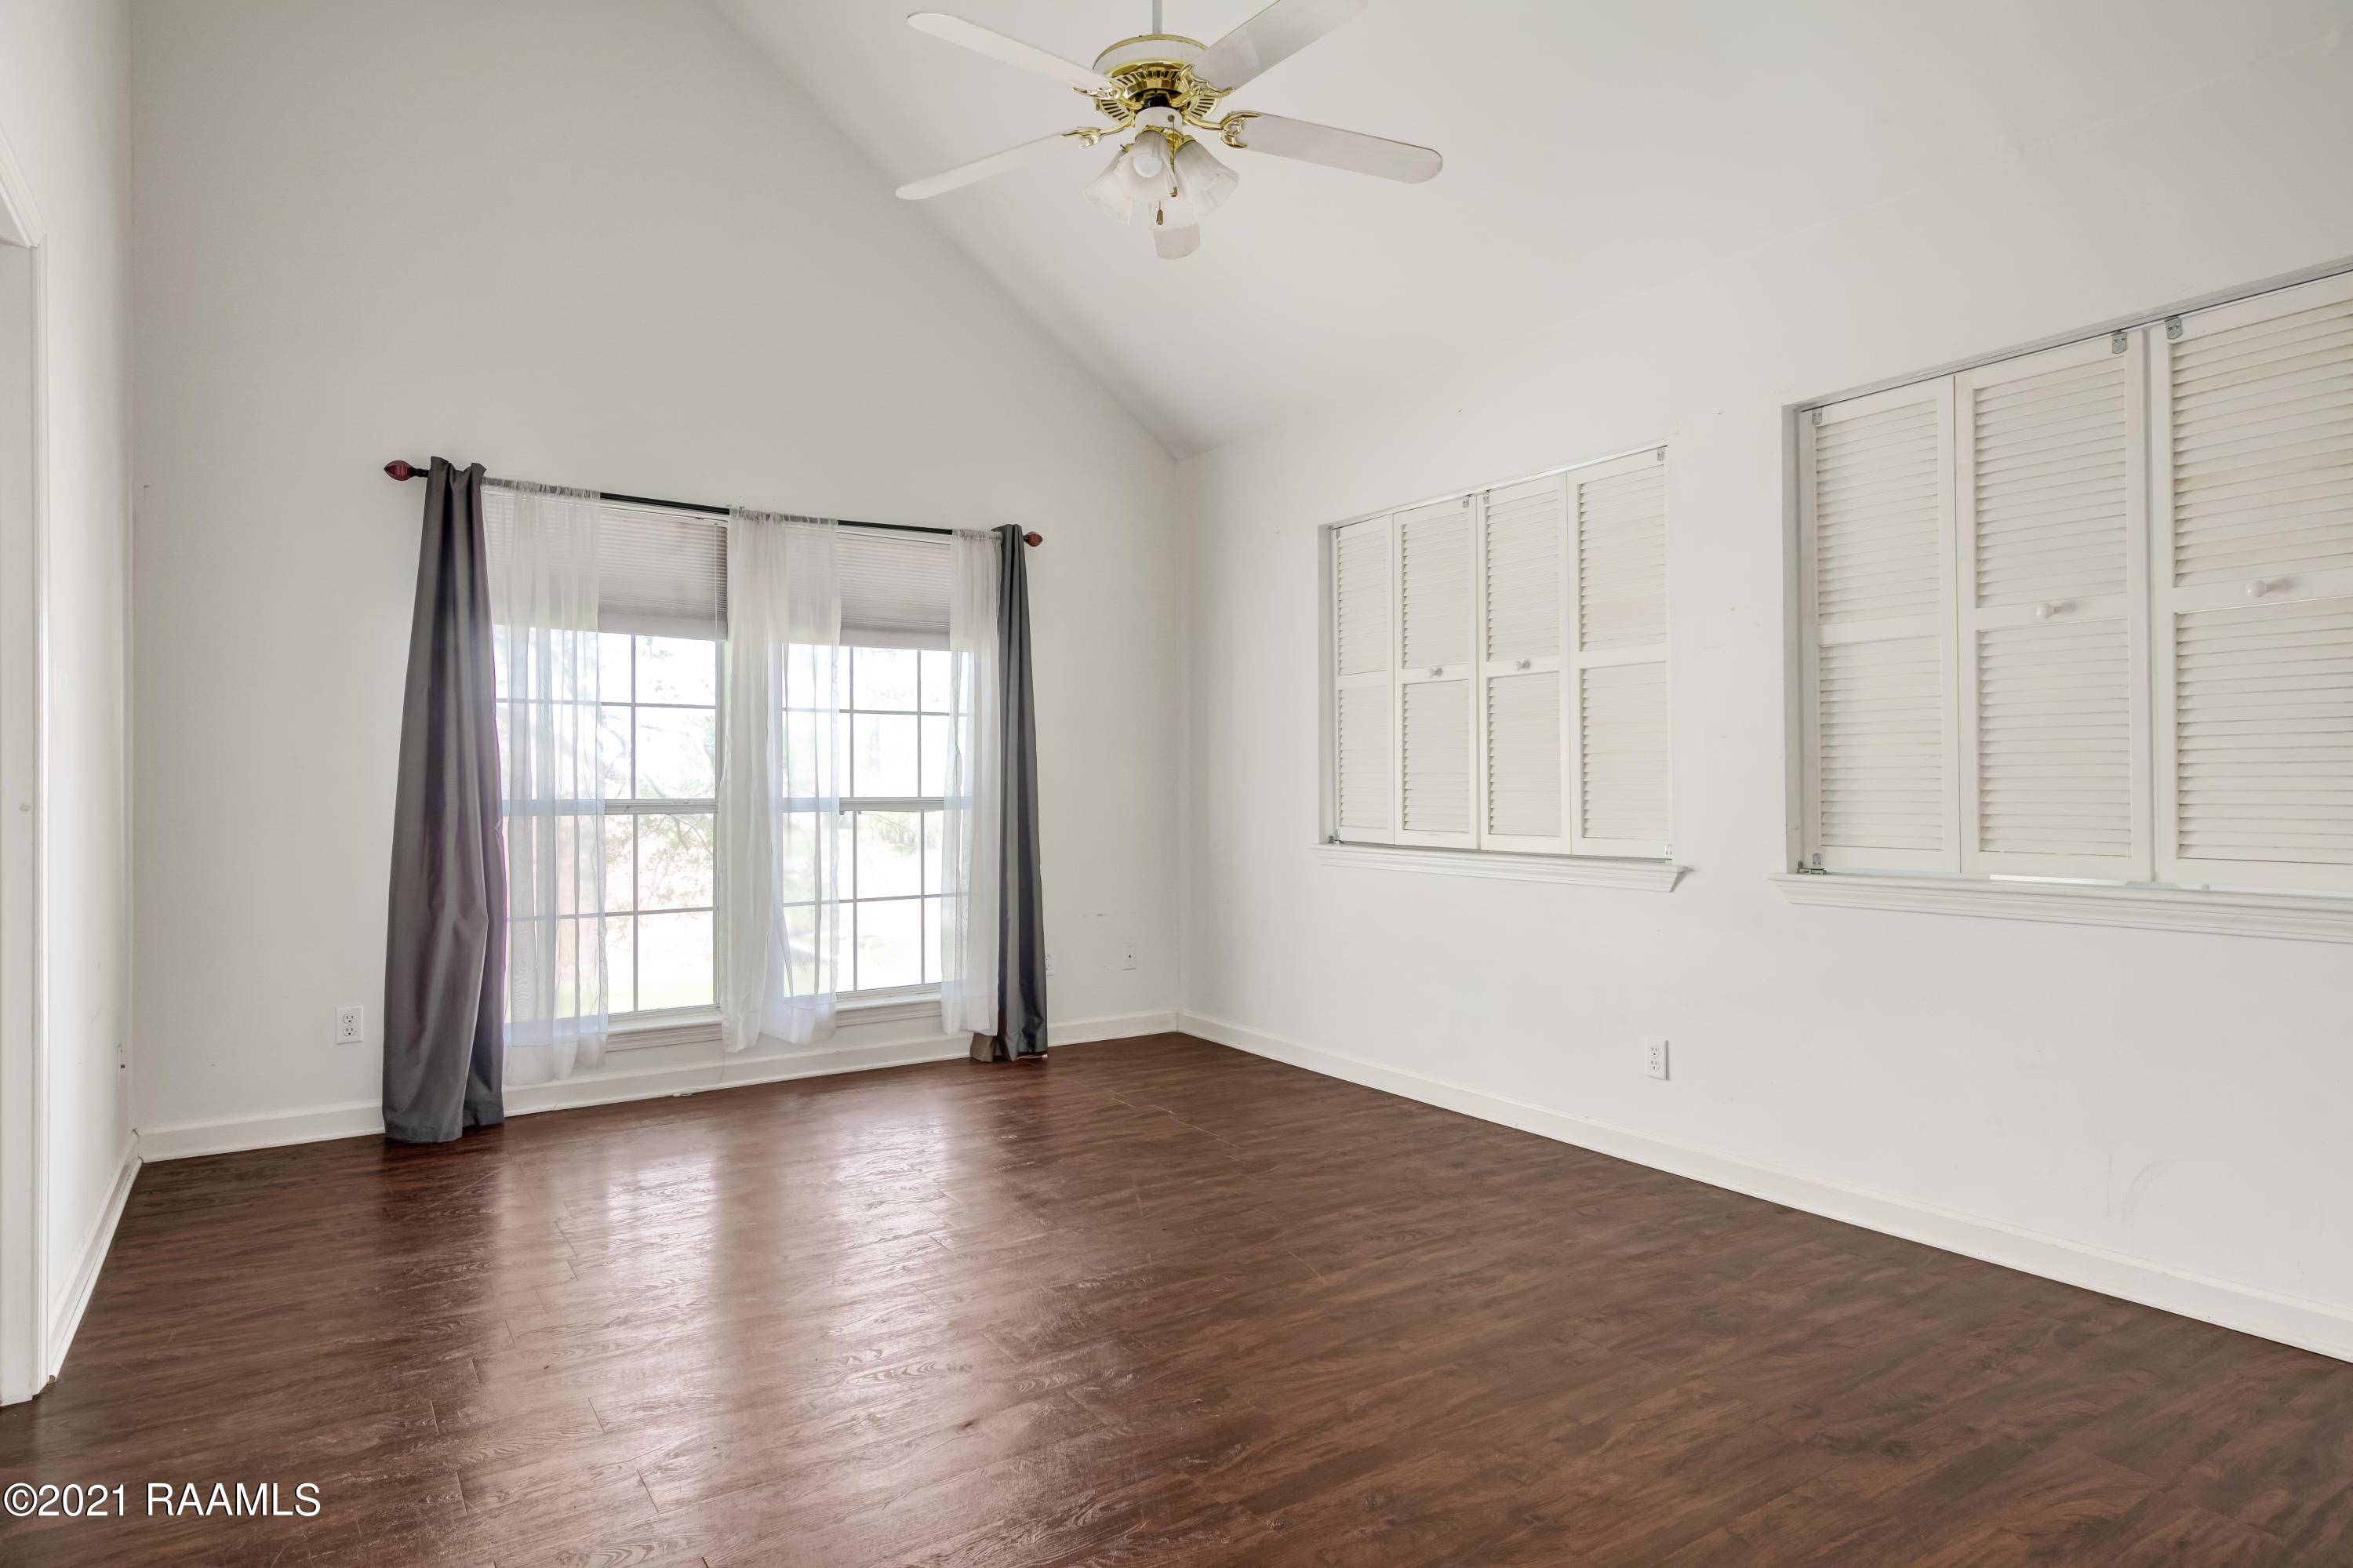 700 Carriage Light Loop, Youngsville, LA 70592 Photo #16